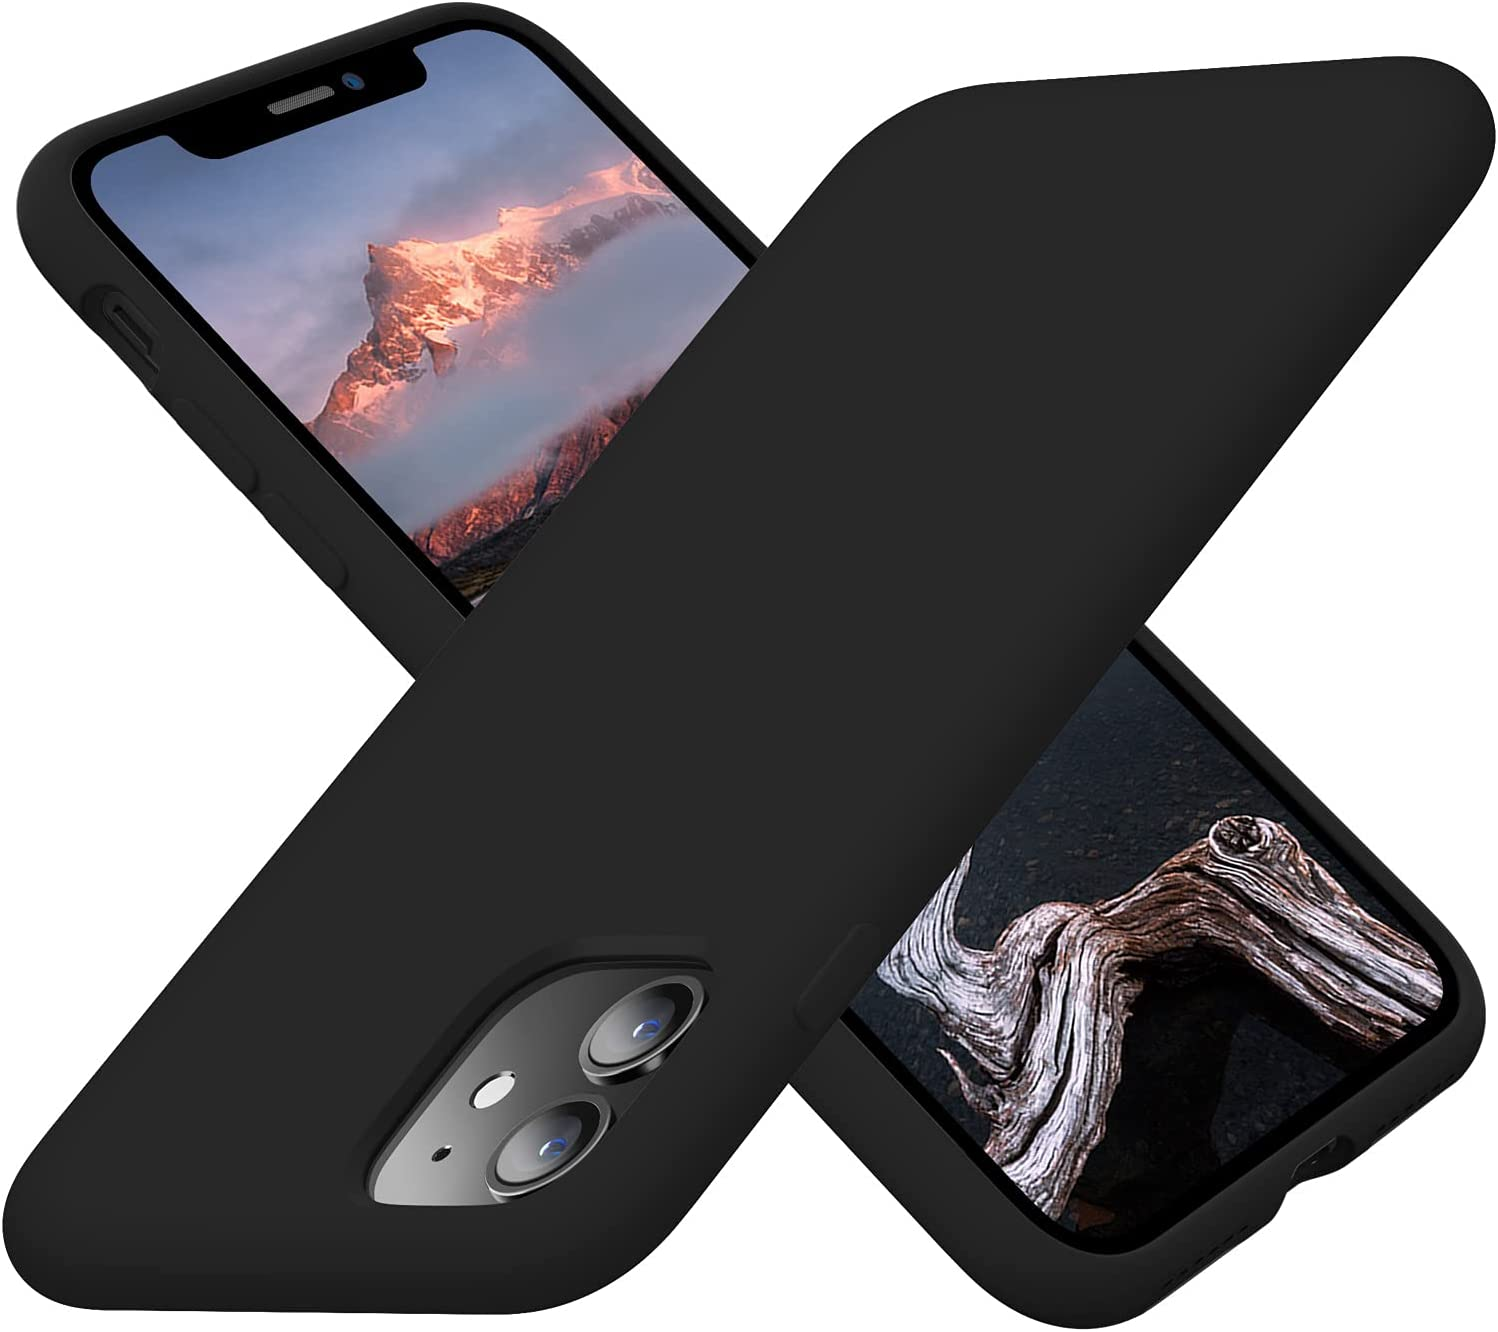 Cordking iPhone 11 Cases, Silicone Ultra Slim Shockproof Phone Case with [Soft Anti-Scratch Microfiber Lining], 6.1 inch, Black